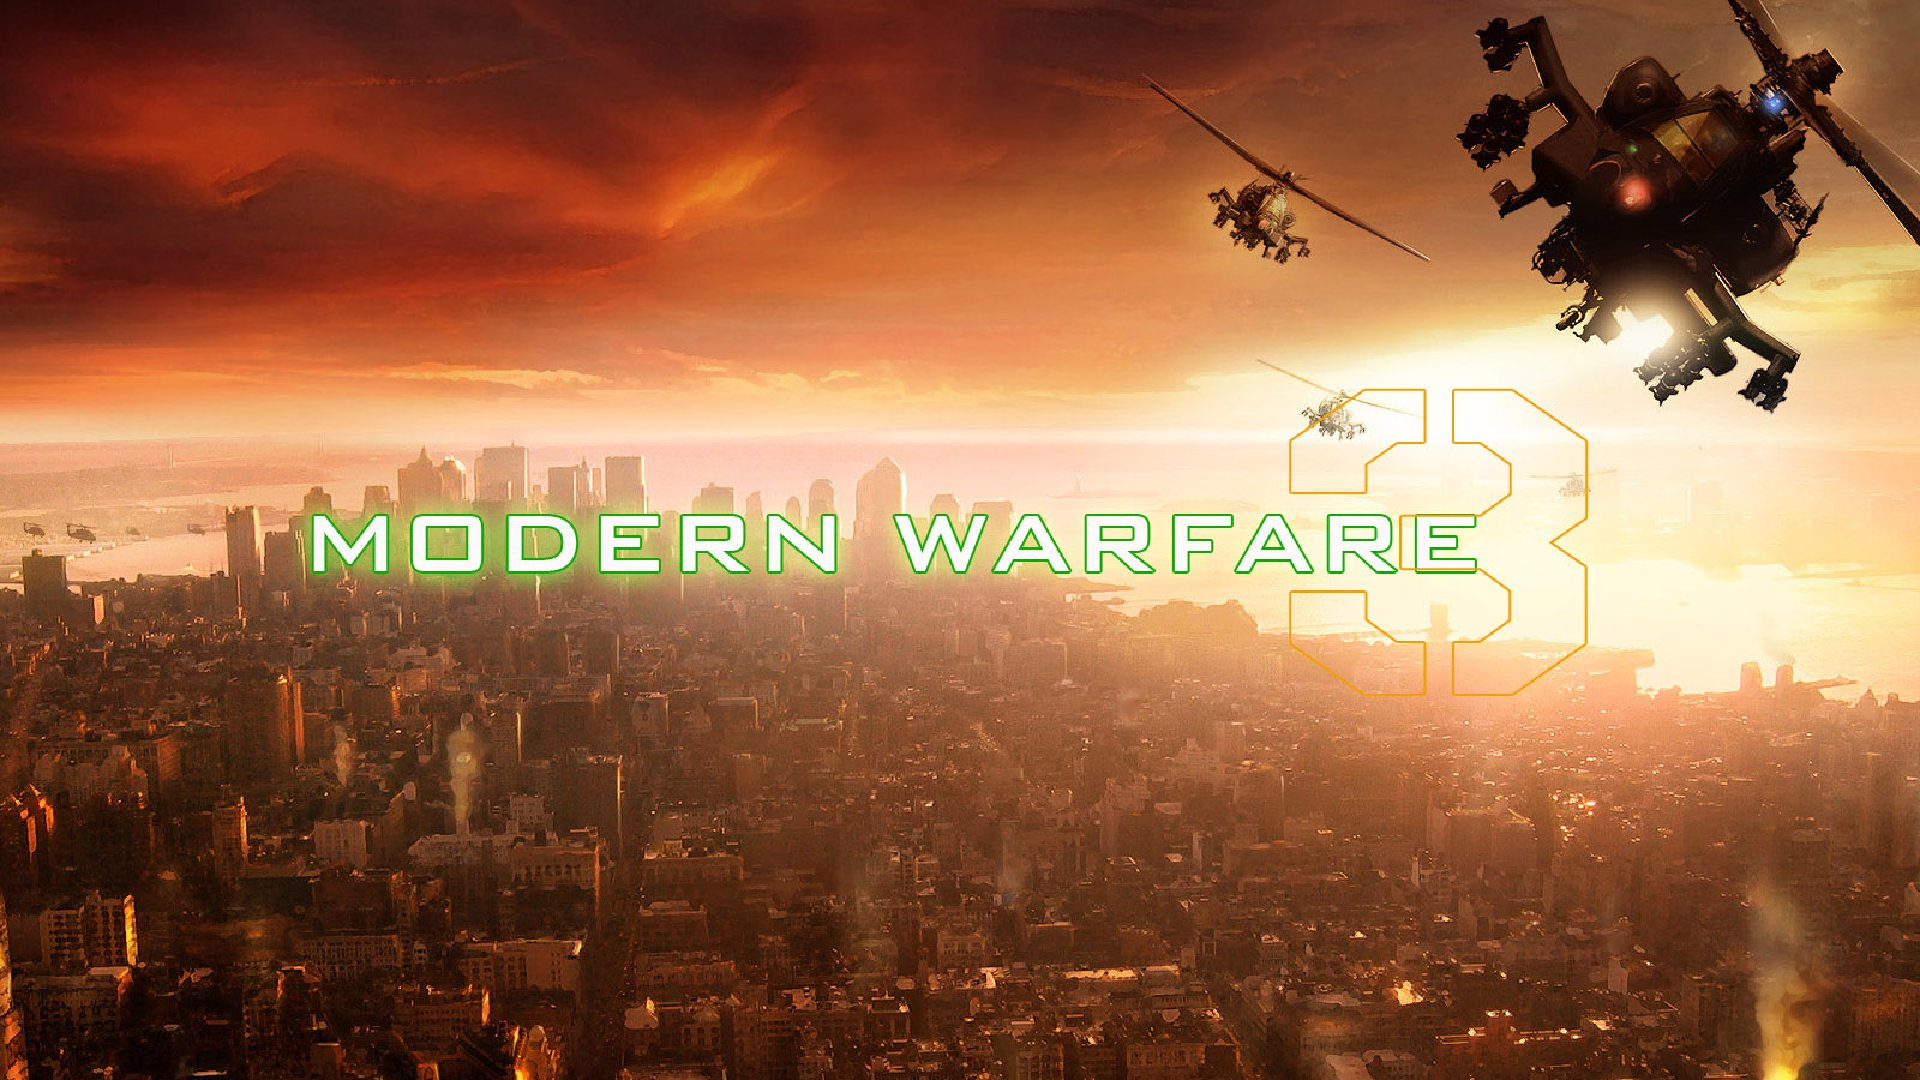 Call Of Duty Modern Warfare 3 Wallpaper 13